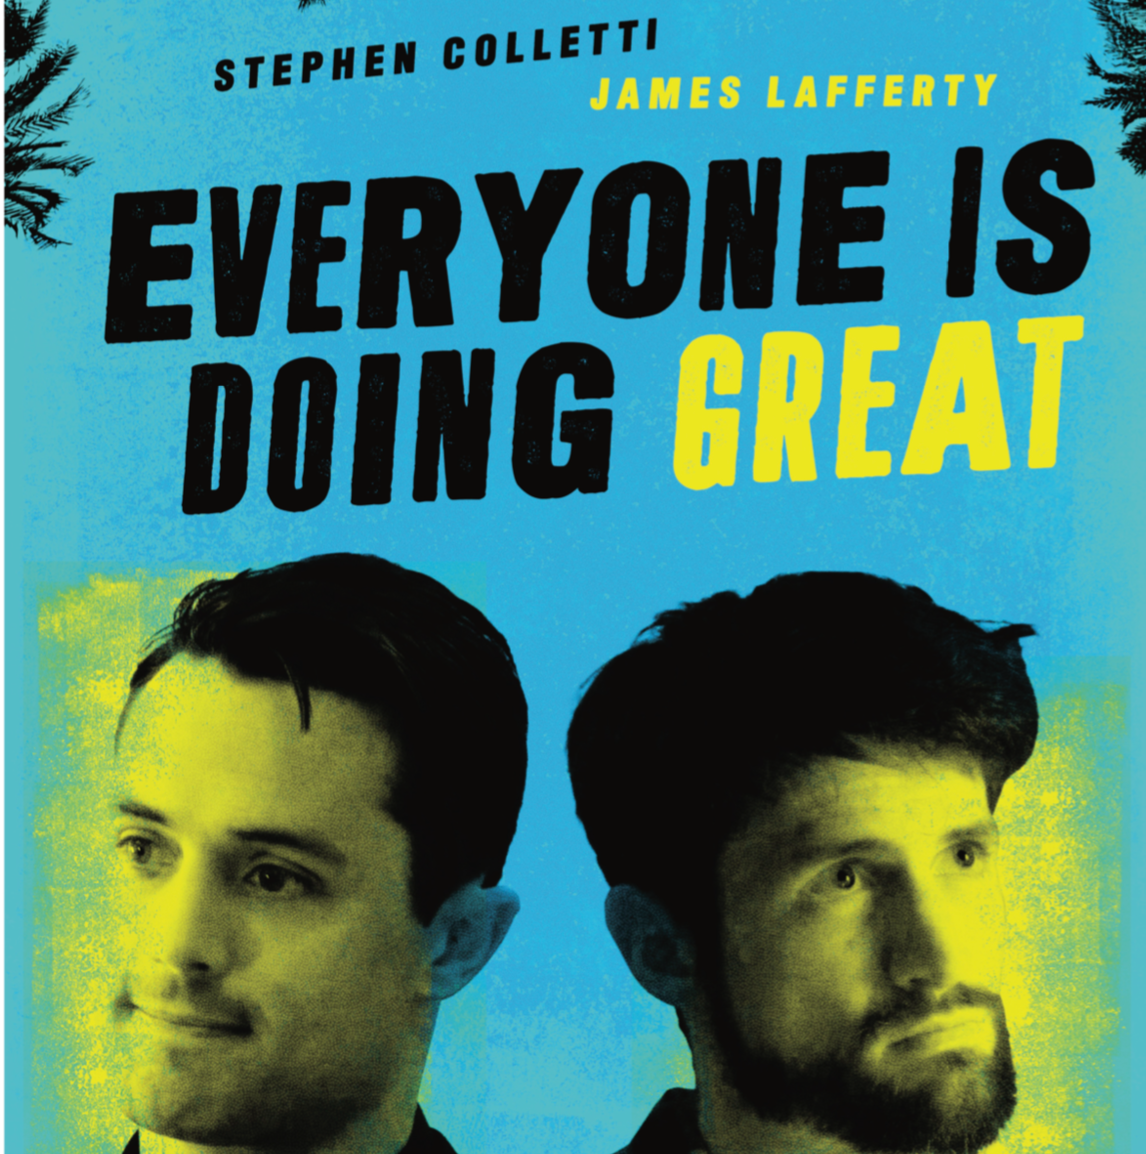 """""""Everyone is Doing Great"""" is a TV Show created by James Lafferty + Stephen Colletti."""